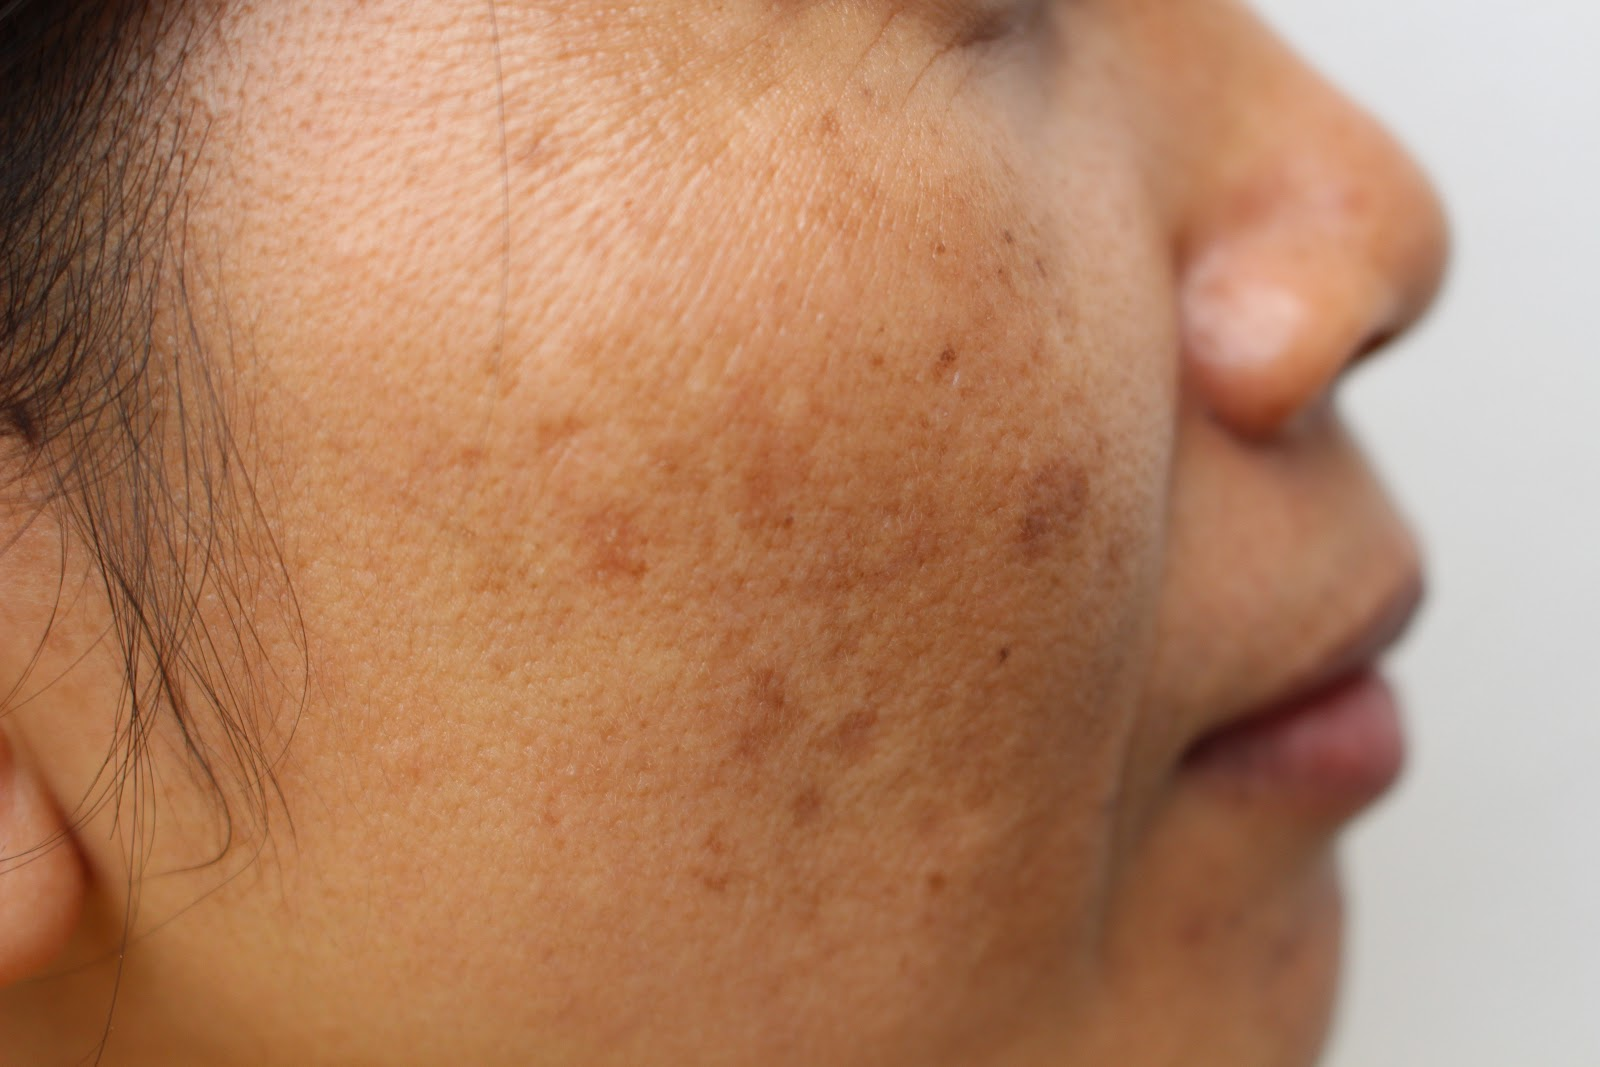 Woman with Varicose veins on face